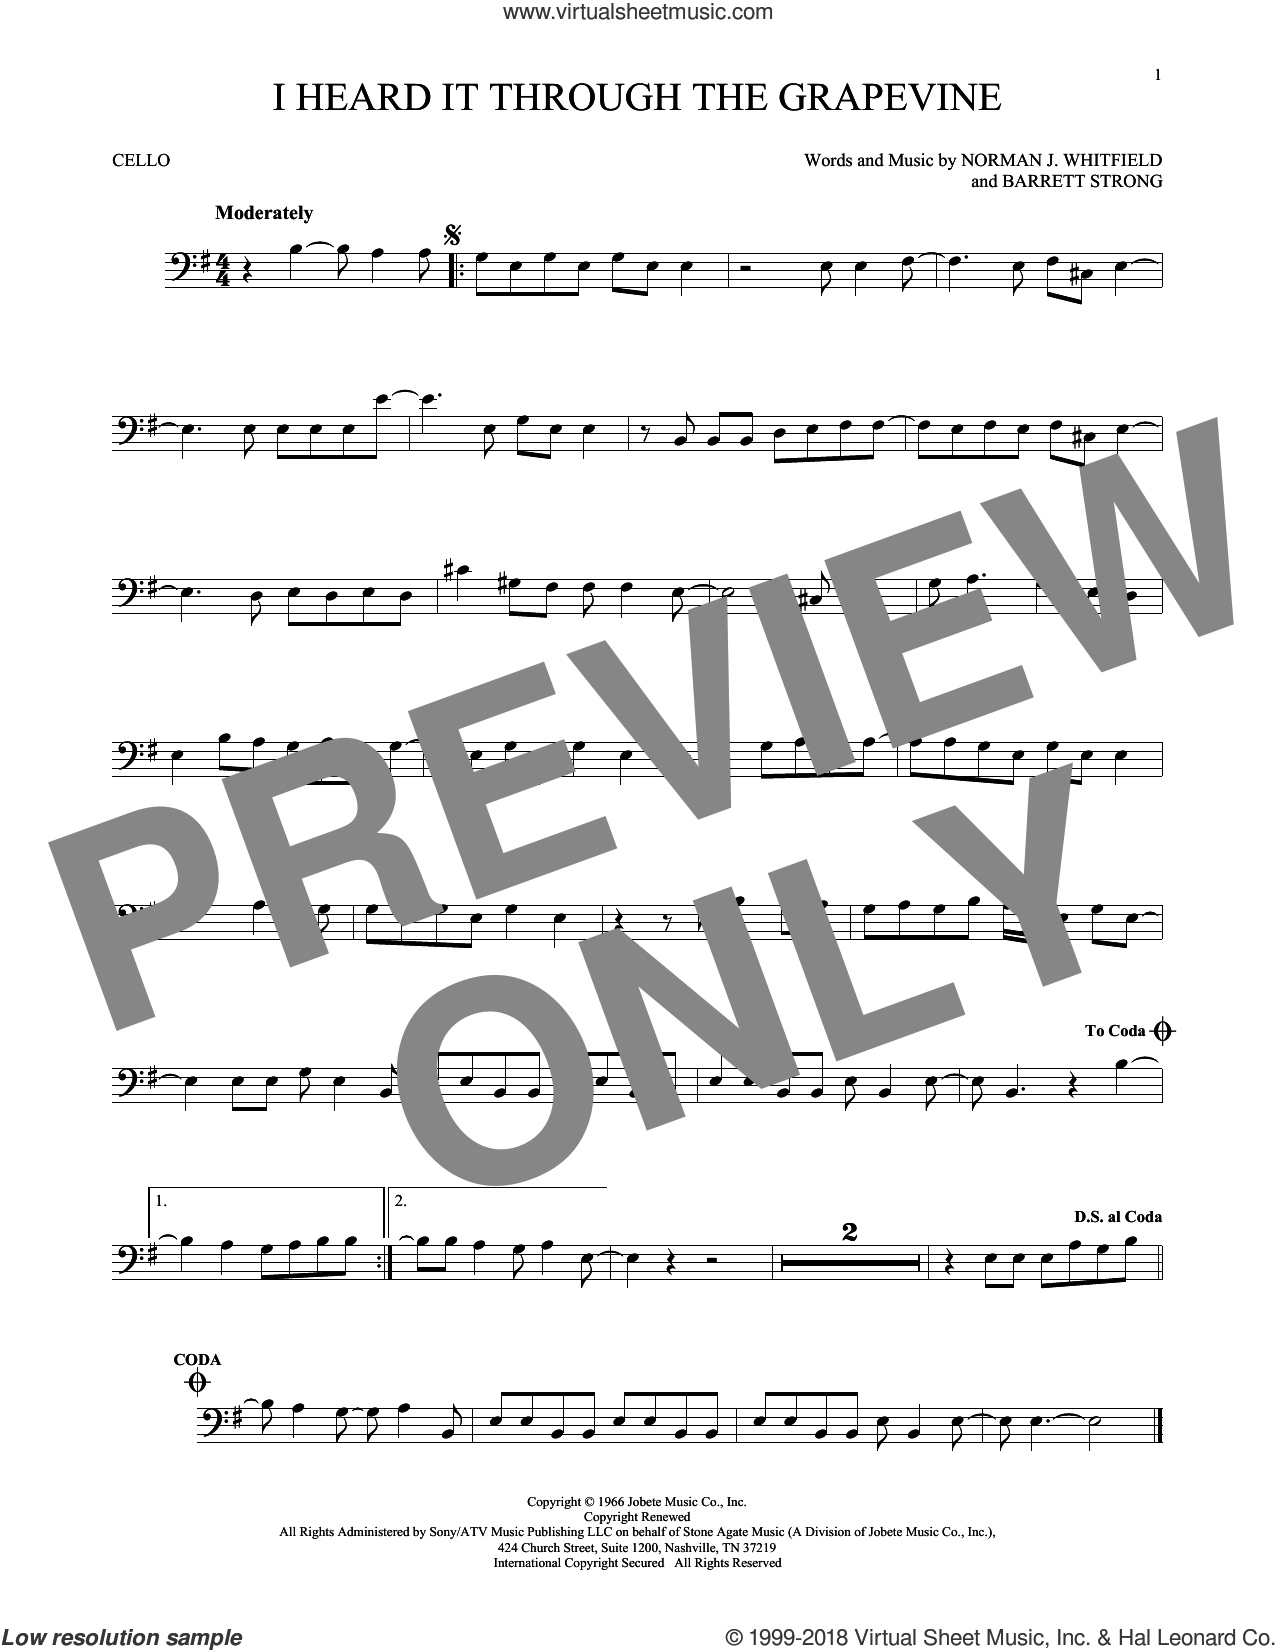 I Heard It Through The Grapevine sheet music for cello solo by Norman Whitfield, Barrett Strong and Norman Whitfield & Barrett Strong, intermediate skill level